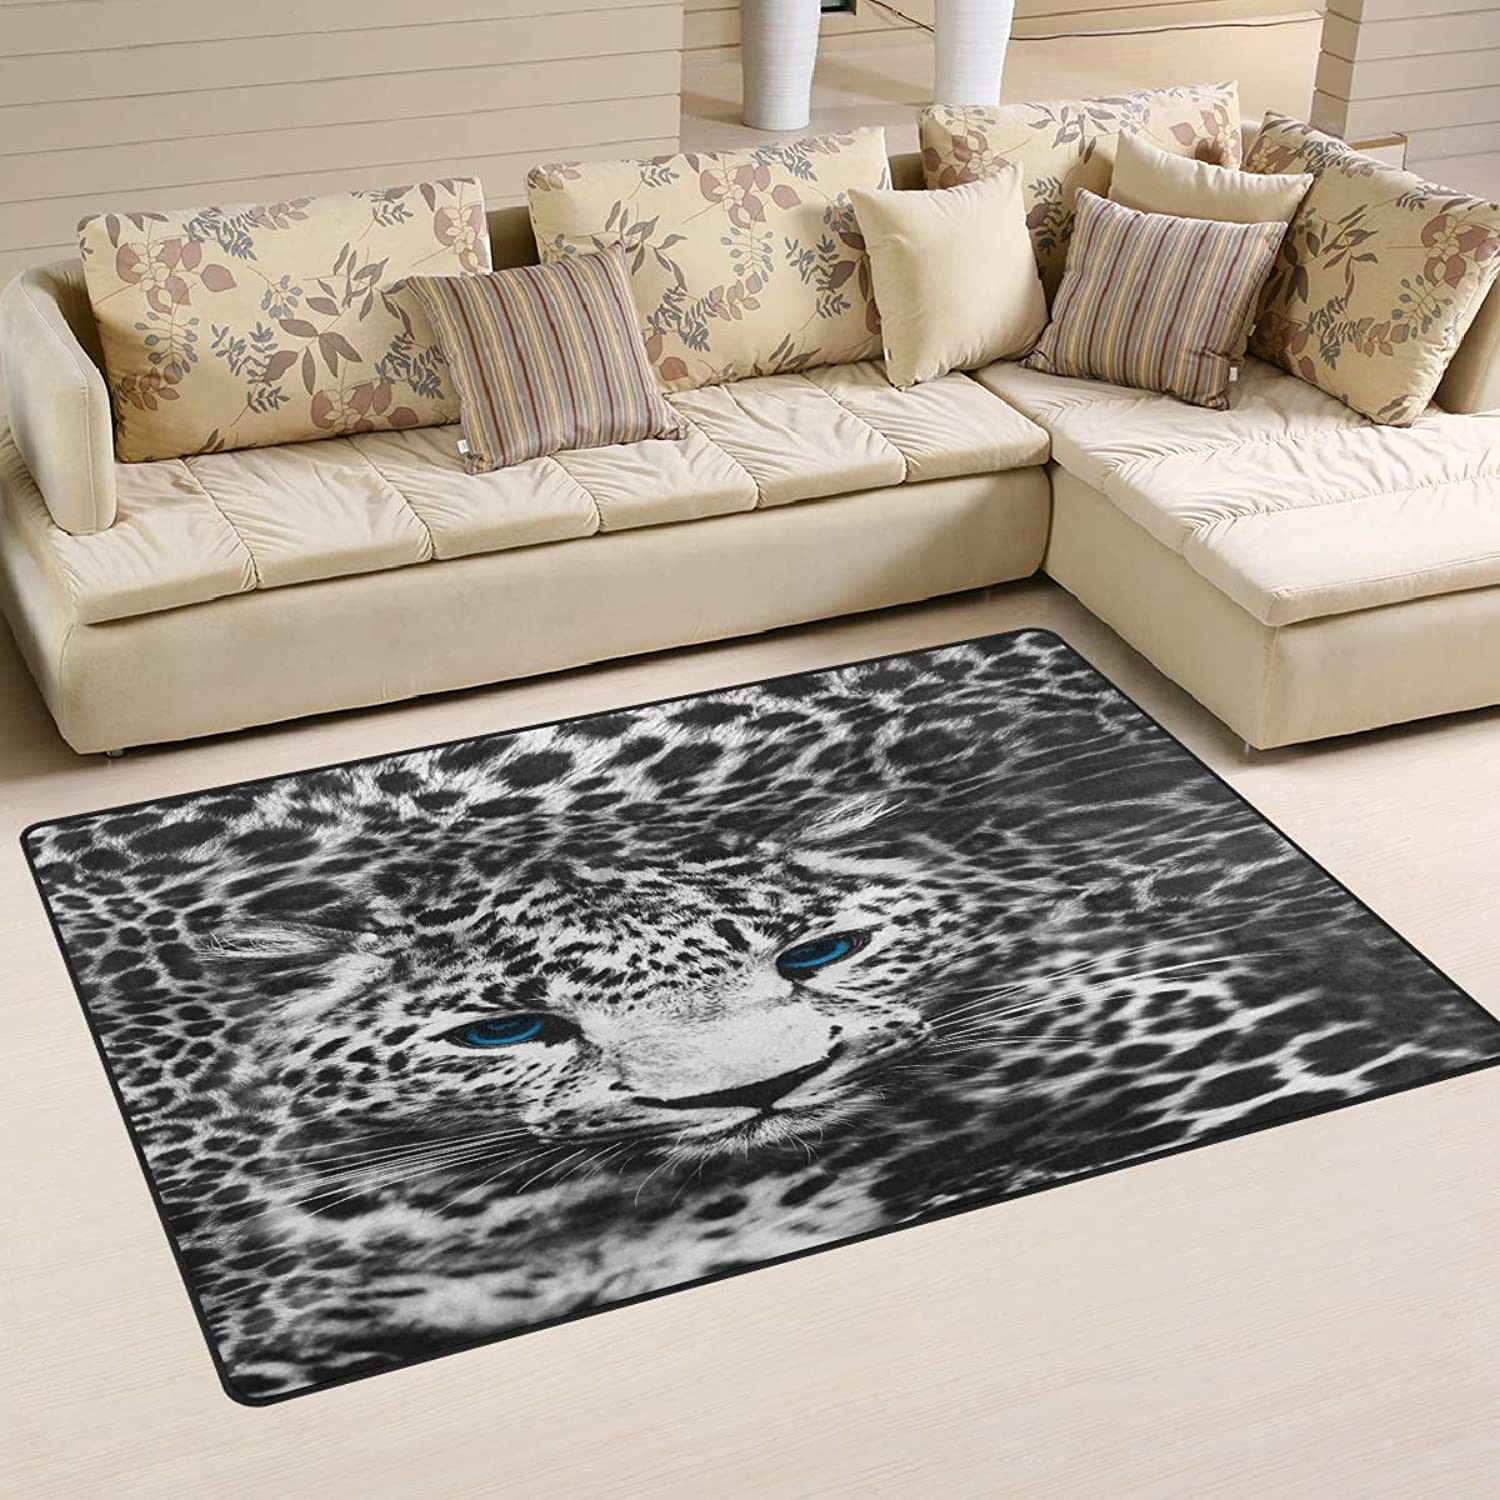 Area Rugs Doormats Animal Leopard Black White 5'x3'3 (60x39 Inches) Non-Slip Floor Mat Soft Carpet for Living Dining Bedroom Home